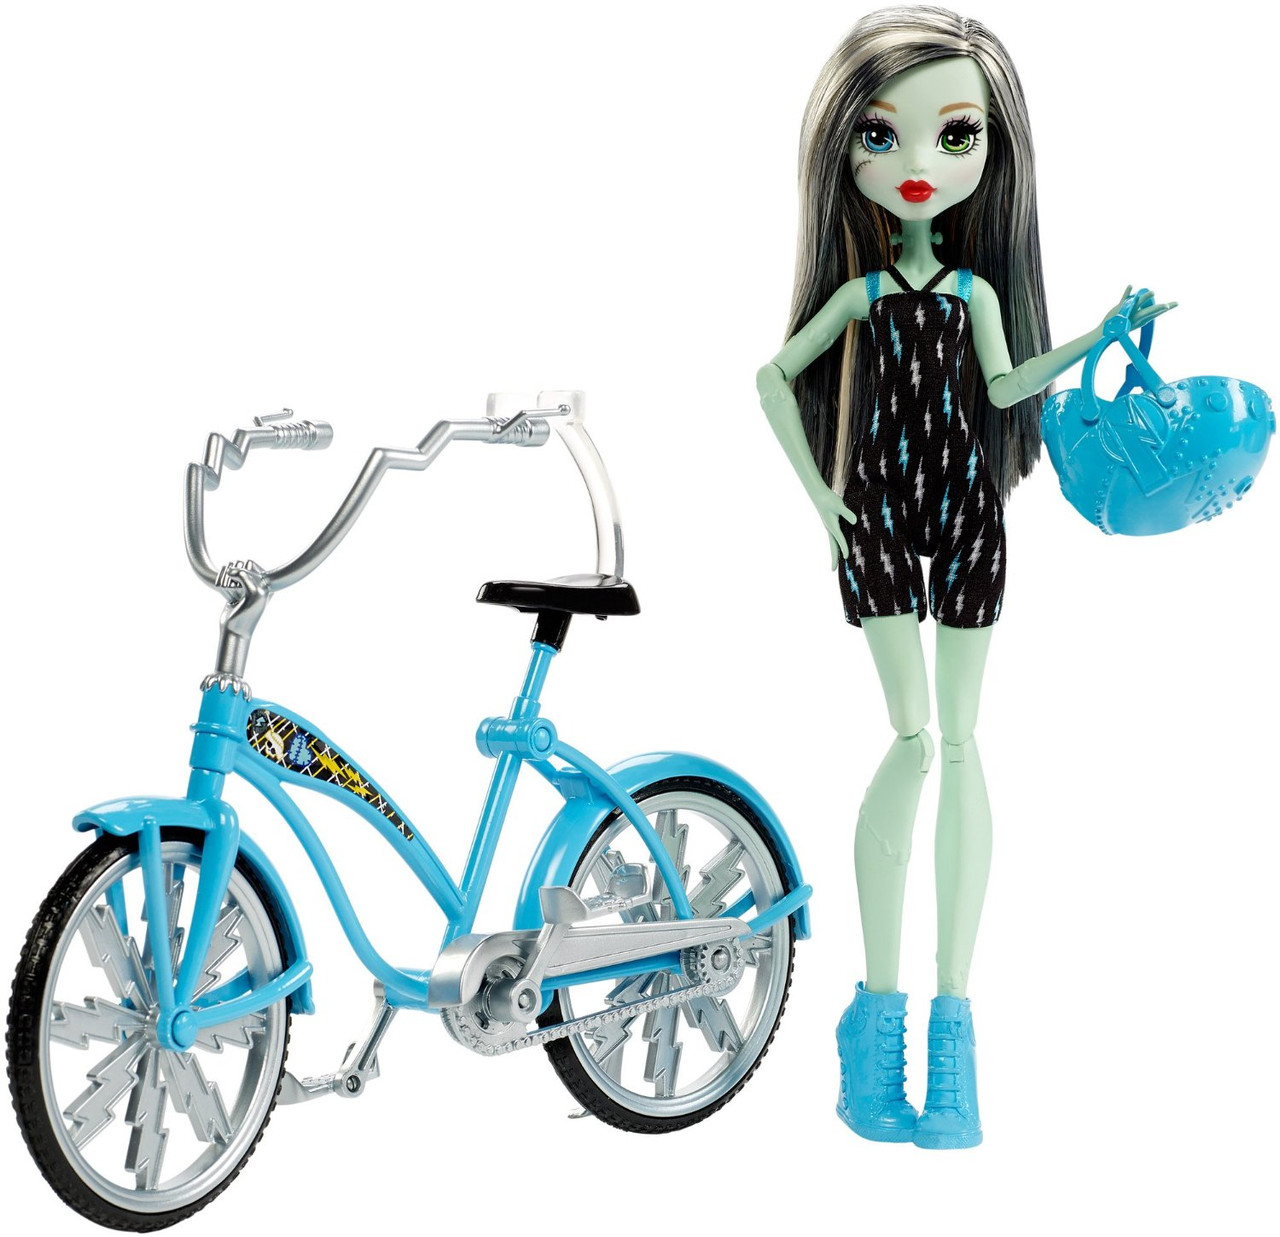 Monster High - Френки Штейн на велосипеде - Интернет-магазин Happychild в Днепре